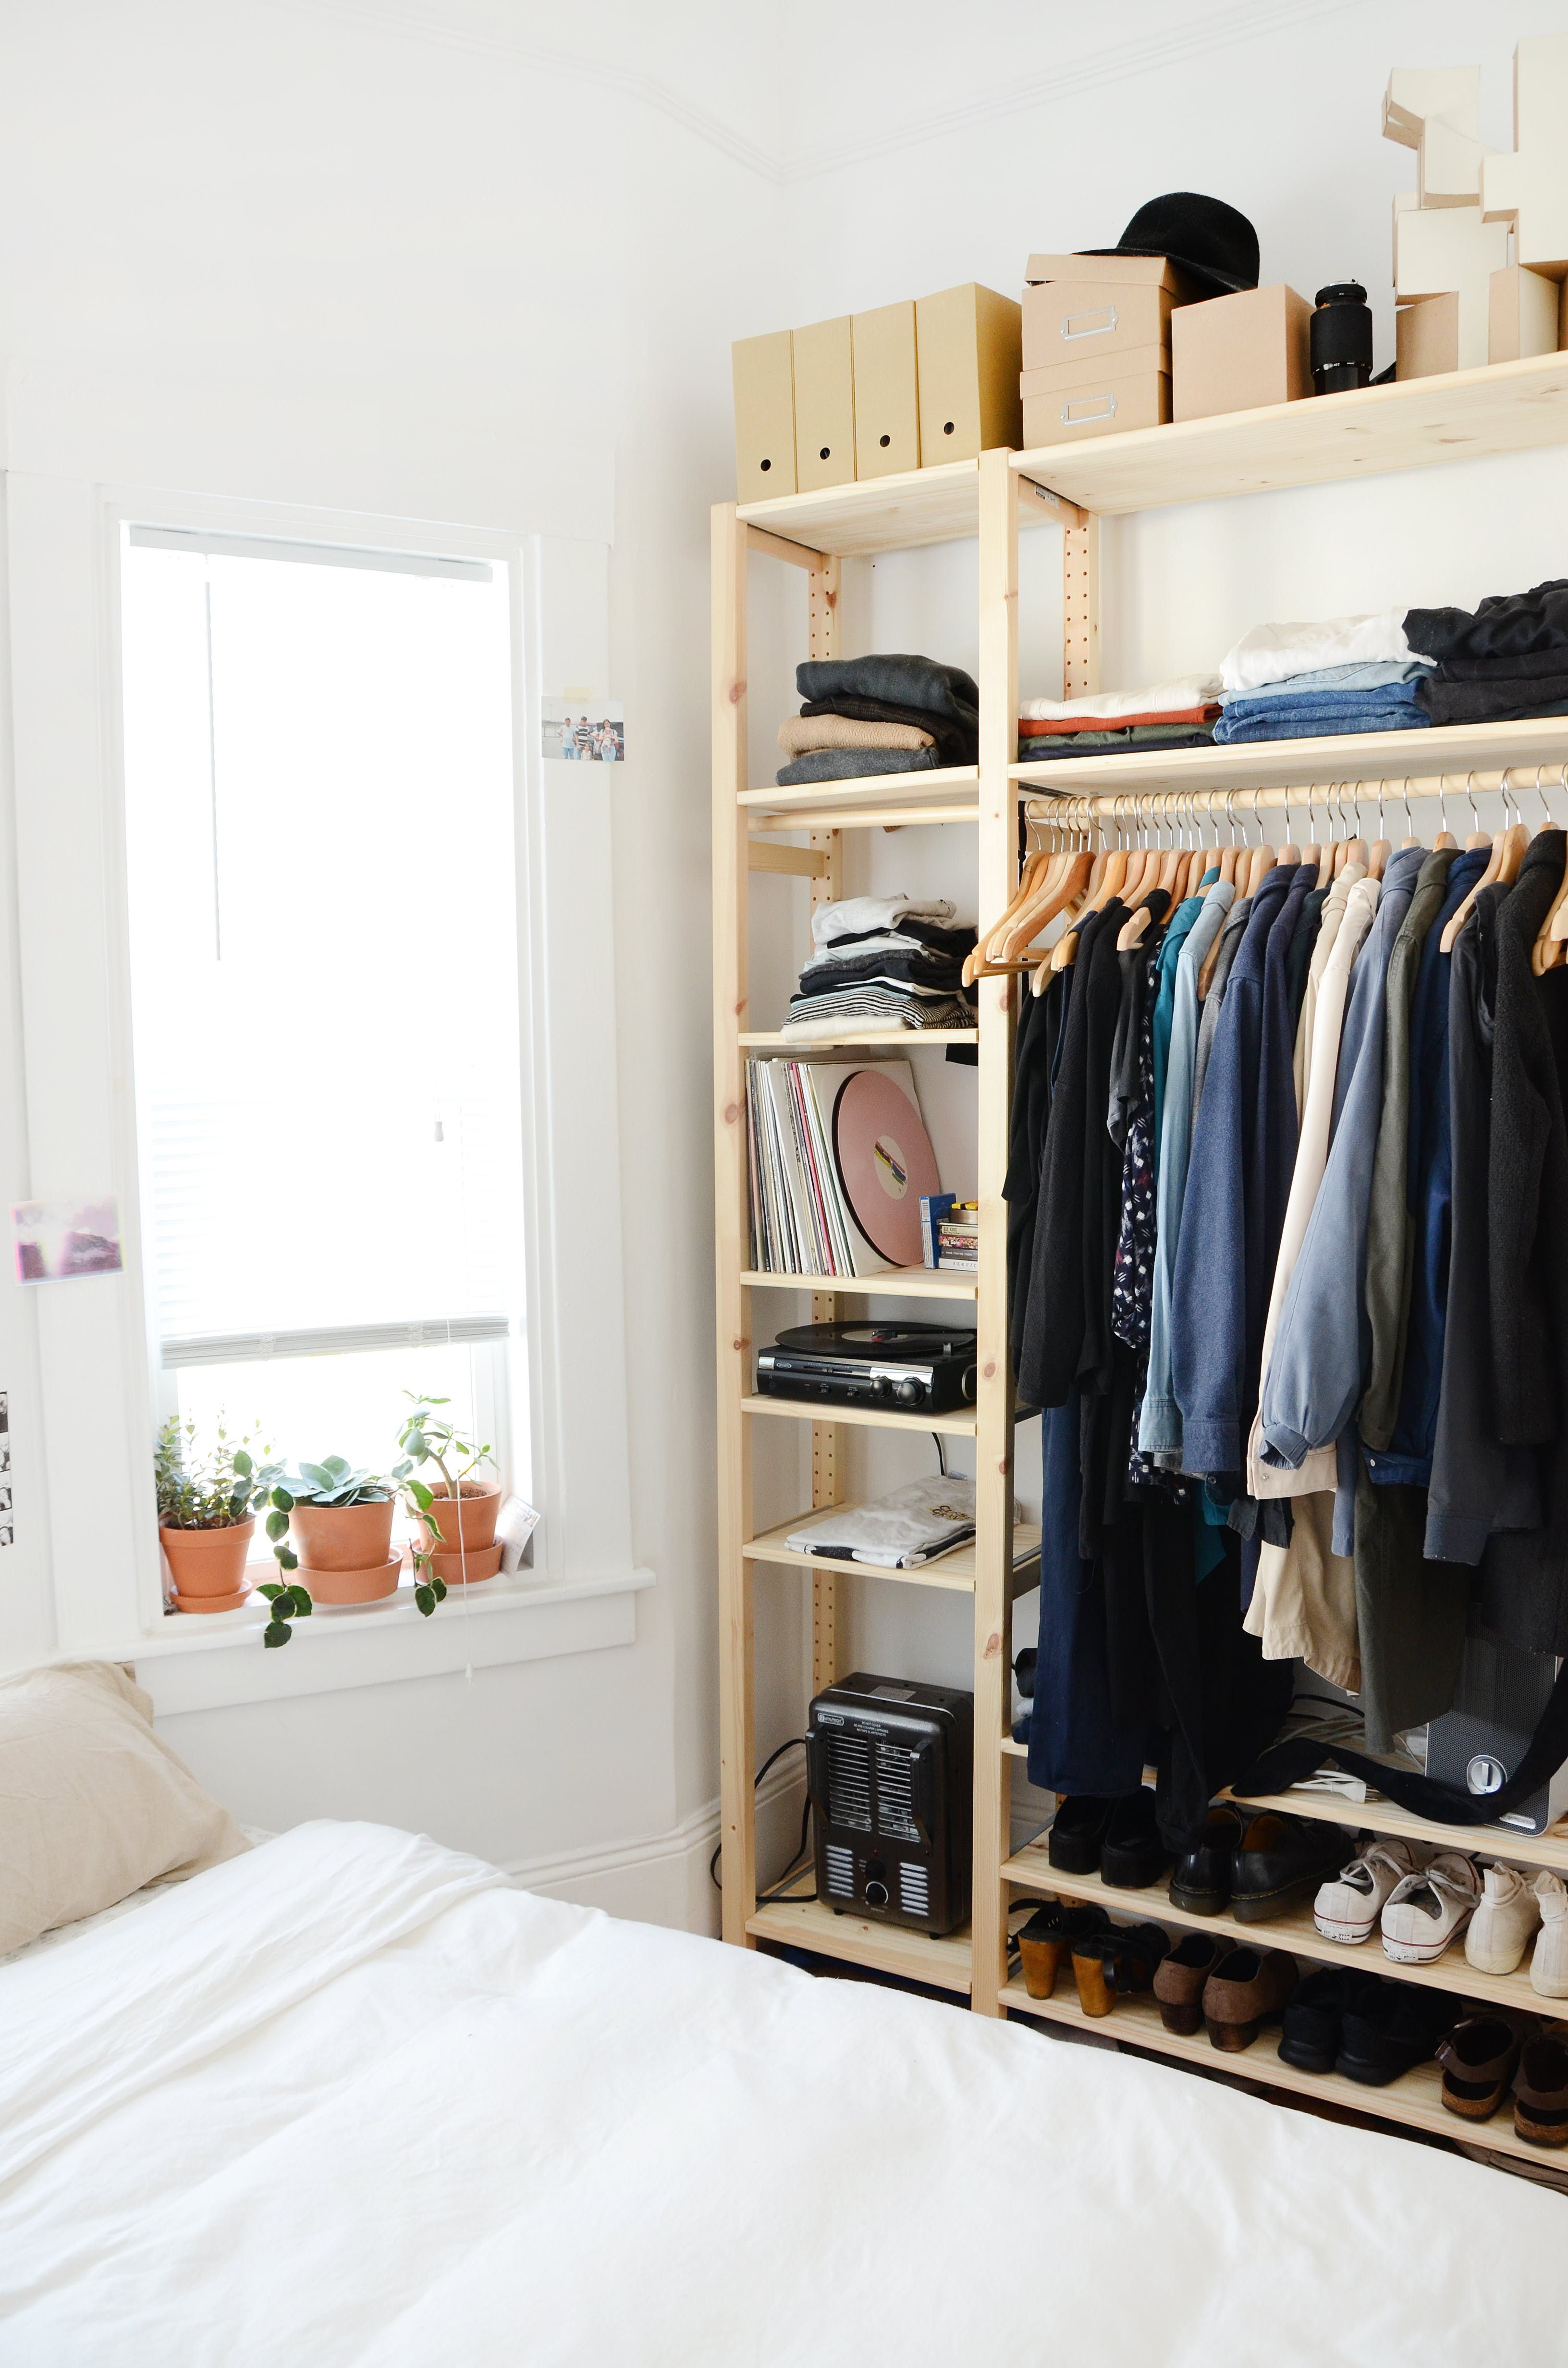 5 Roommates 0 Closets And Lots Of Clever Storage Solutions In San